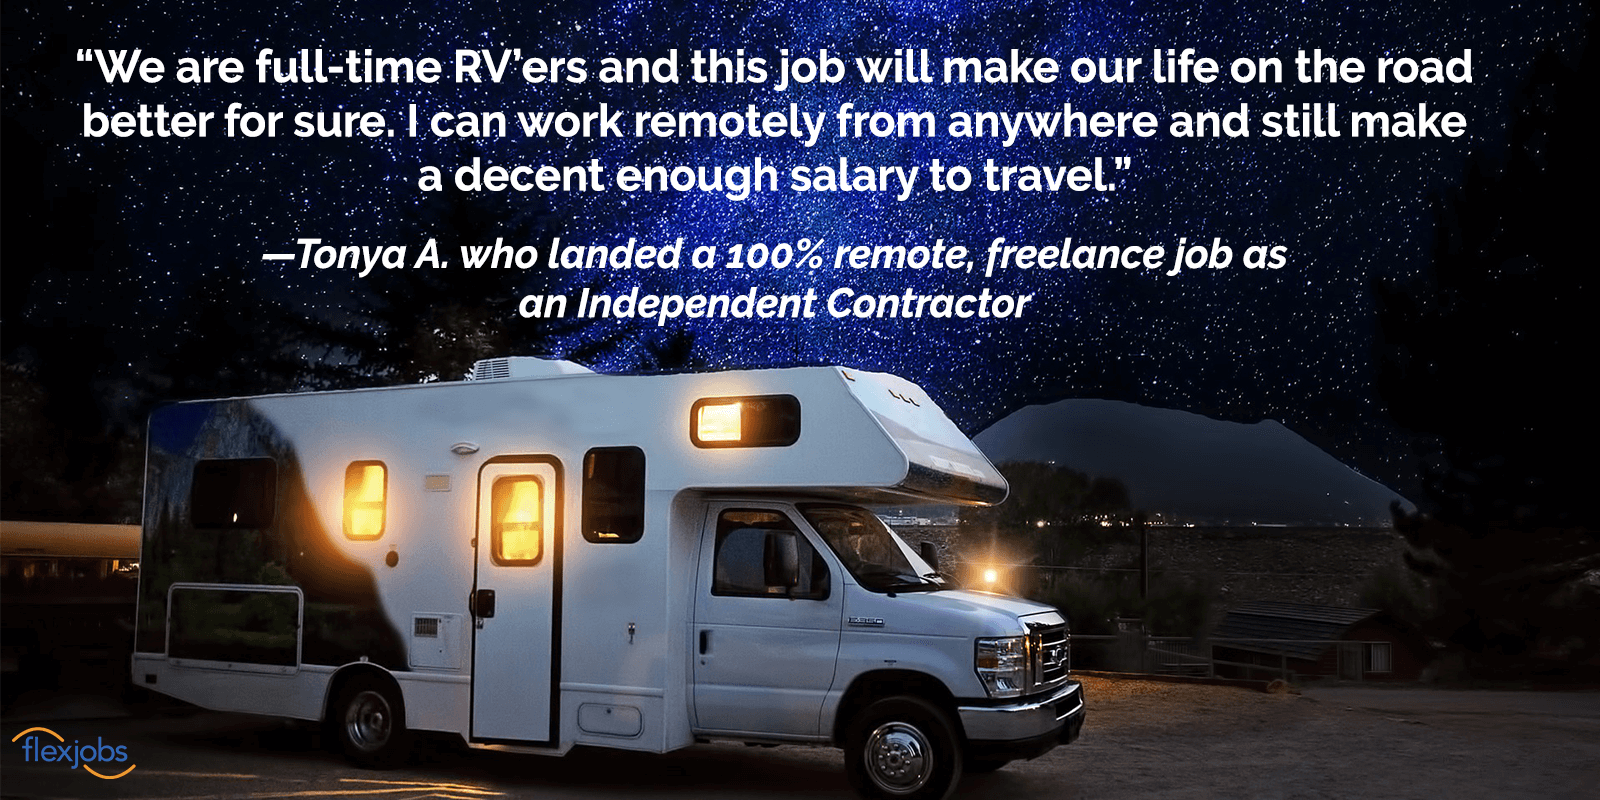 FlexJobs Provides Full-Time RVer With Ability to Work From Anywhere 2